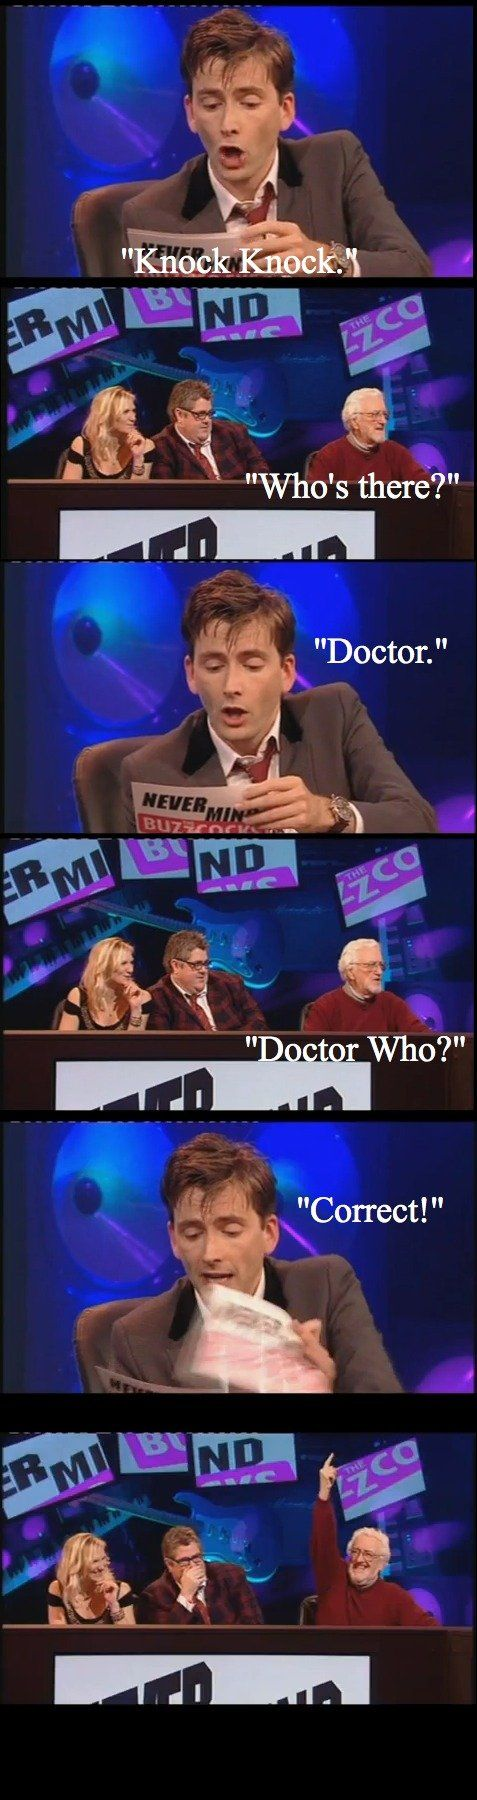 David Tennant tells a joke. hahaha i watched this episode about 4 times. (and laughed every time.)